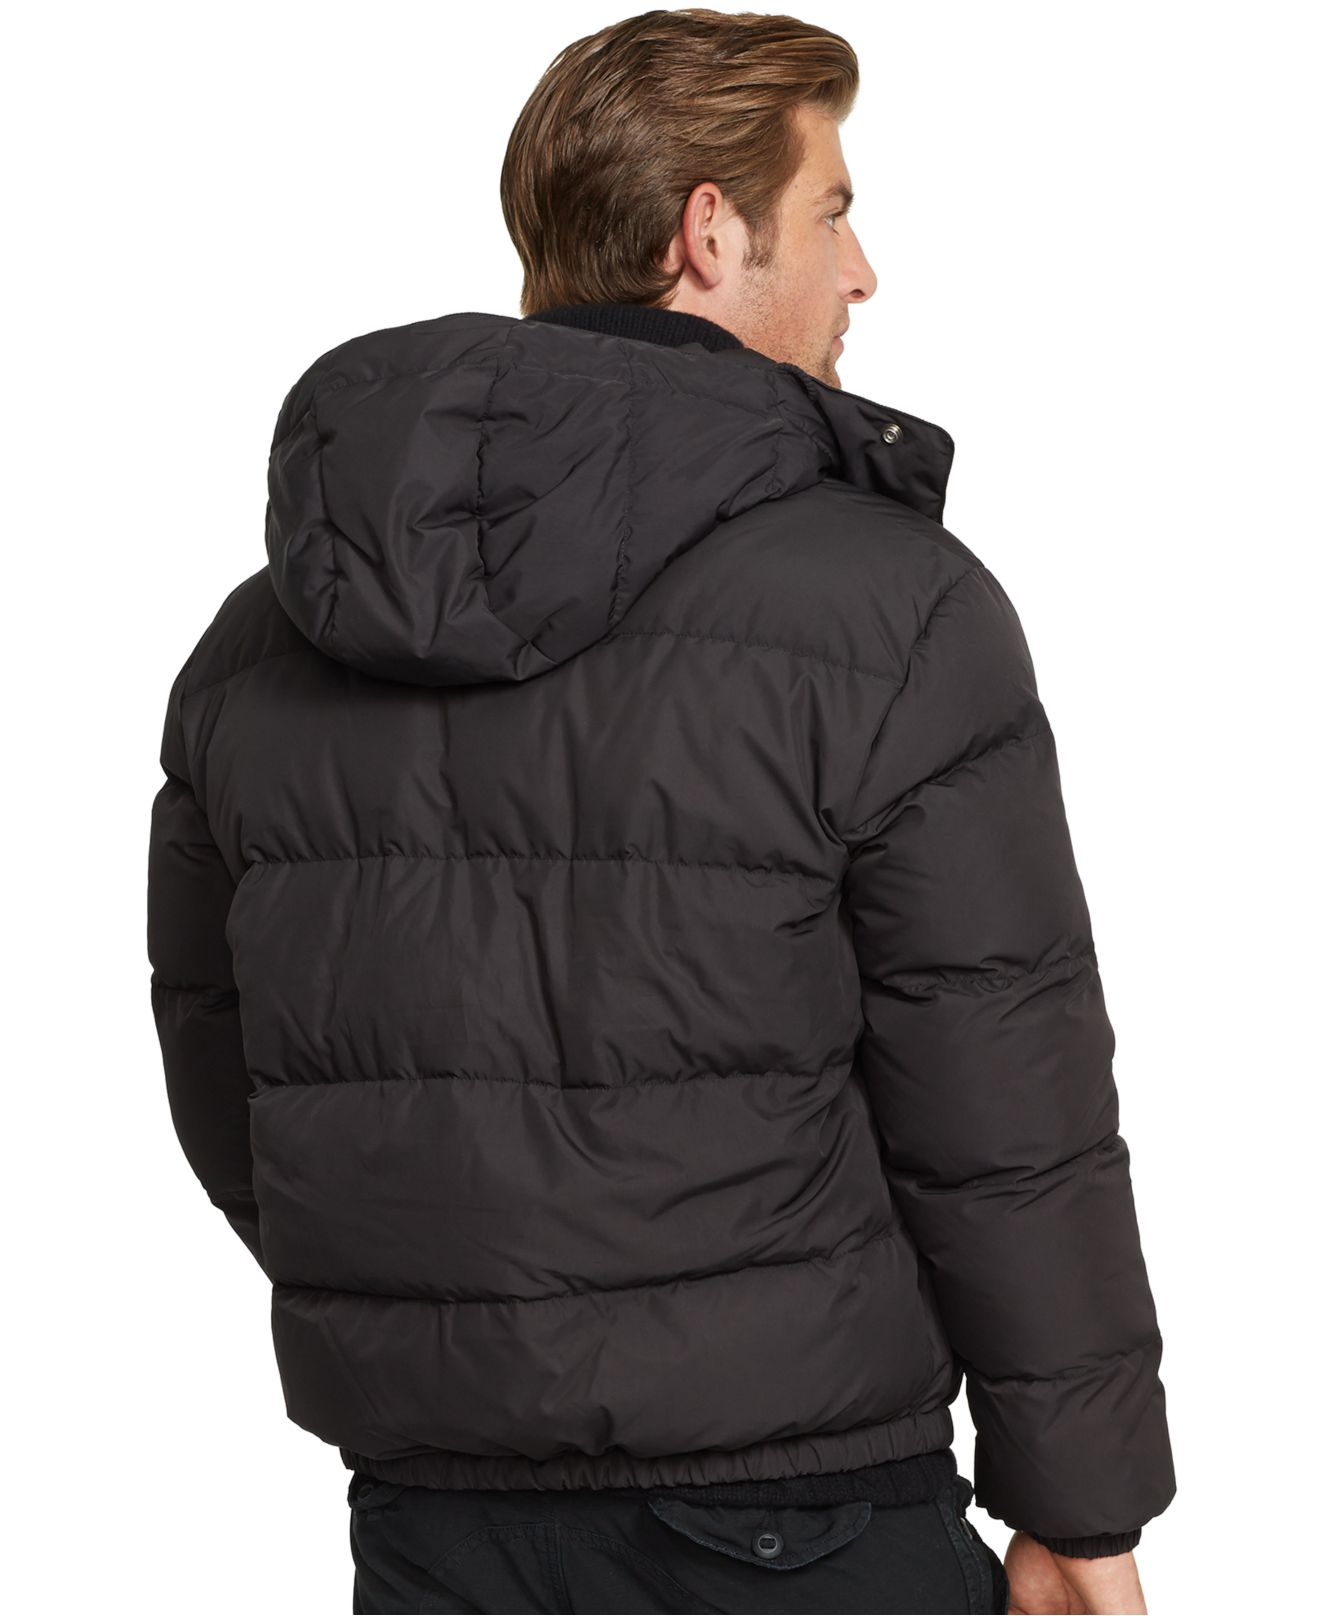 polo ralph lauren elmwood down jacket in black for men lyst. Black Bedroom Furniture Sets. Home Design Ideas